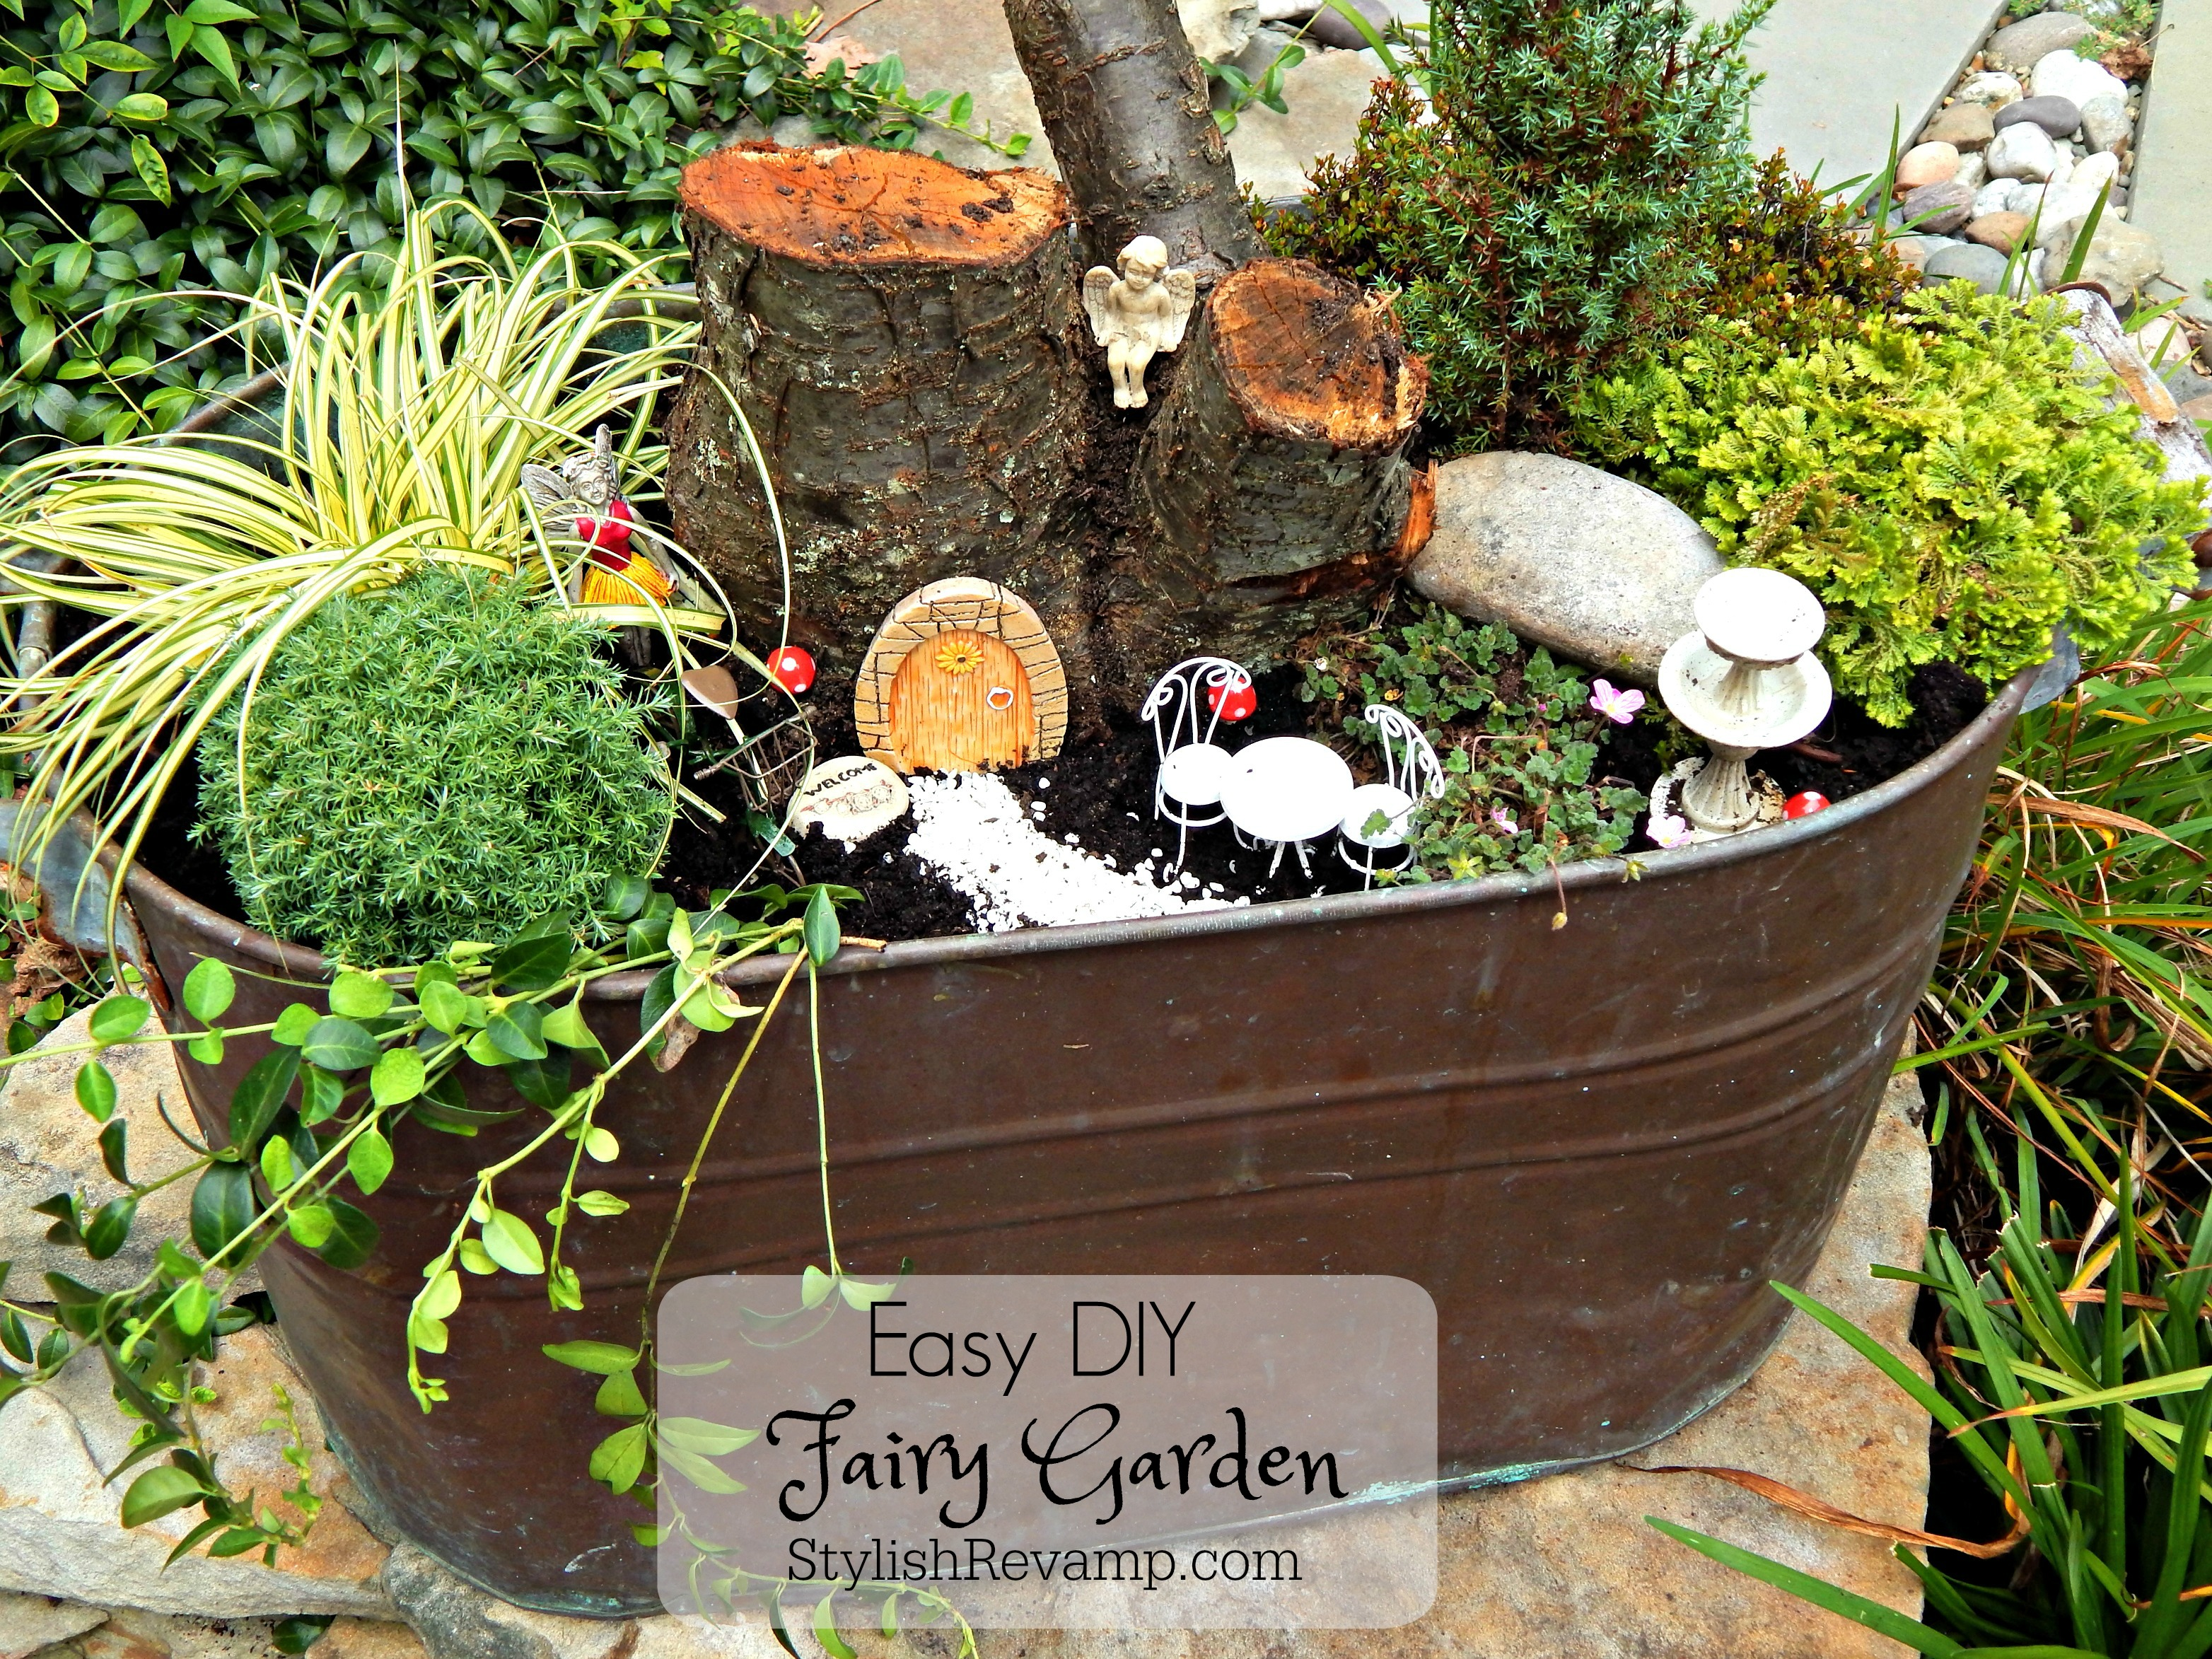 Easy Diy Fairy Garden Stylish Revamp